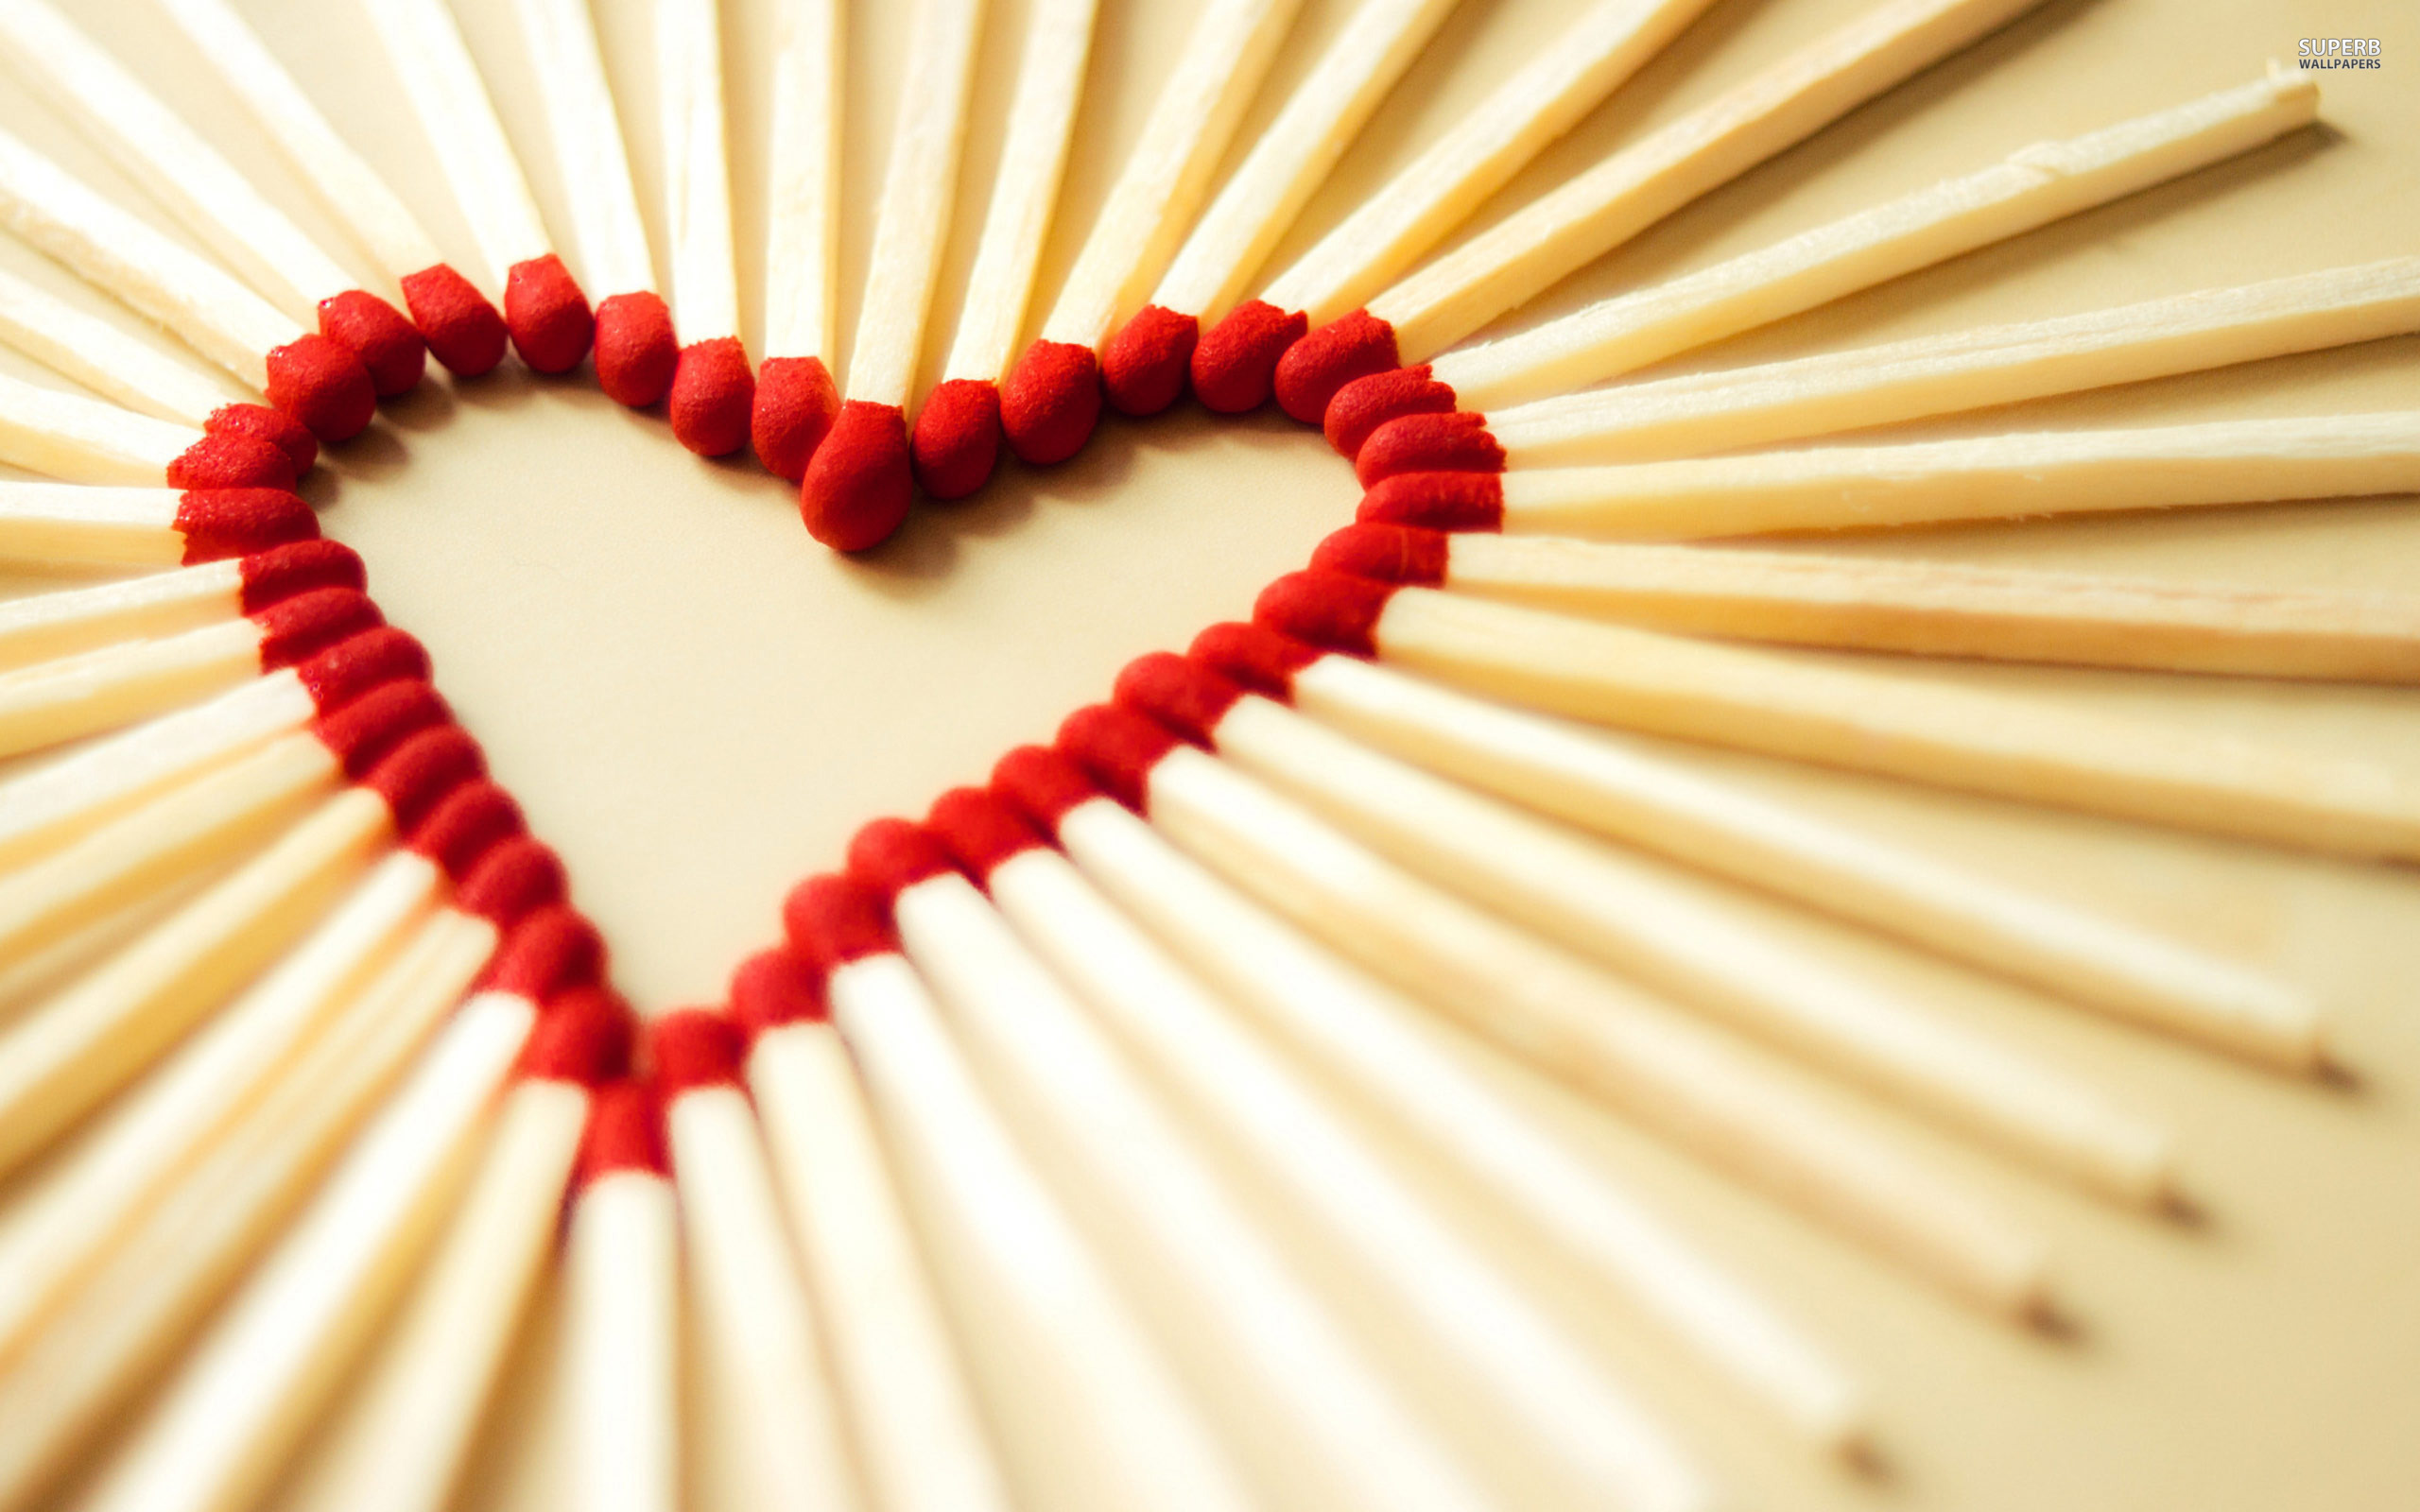 Heart shaped match sticks wallpaper 2560x1600